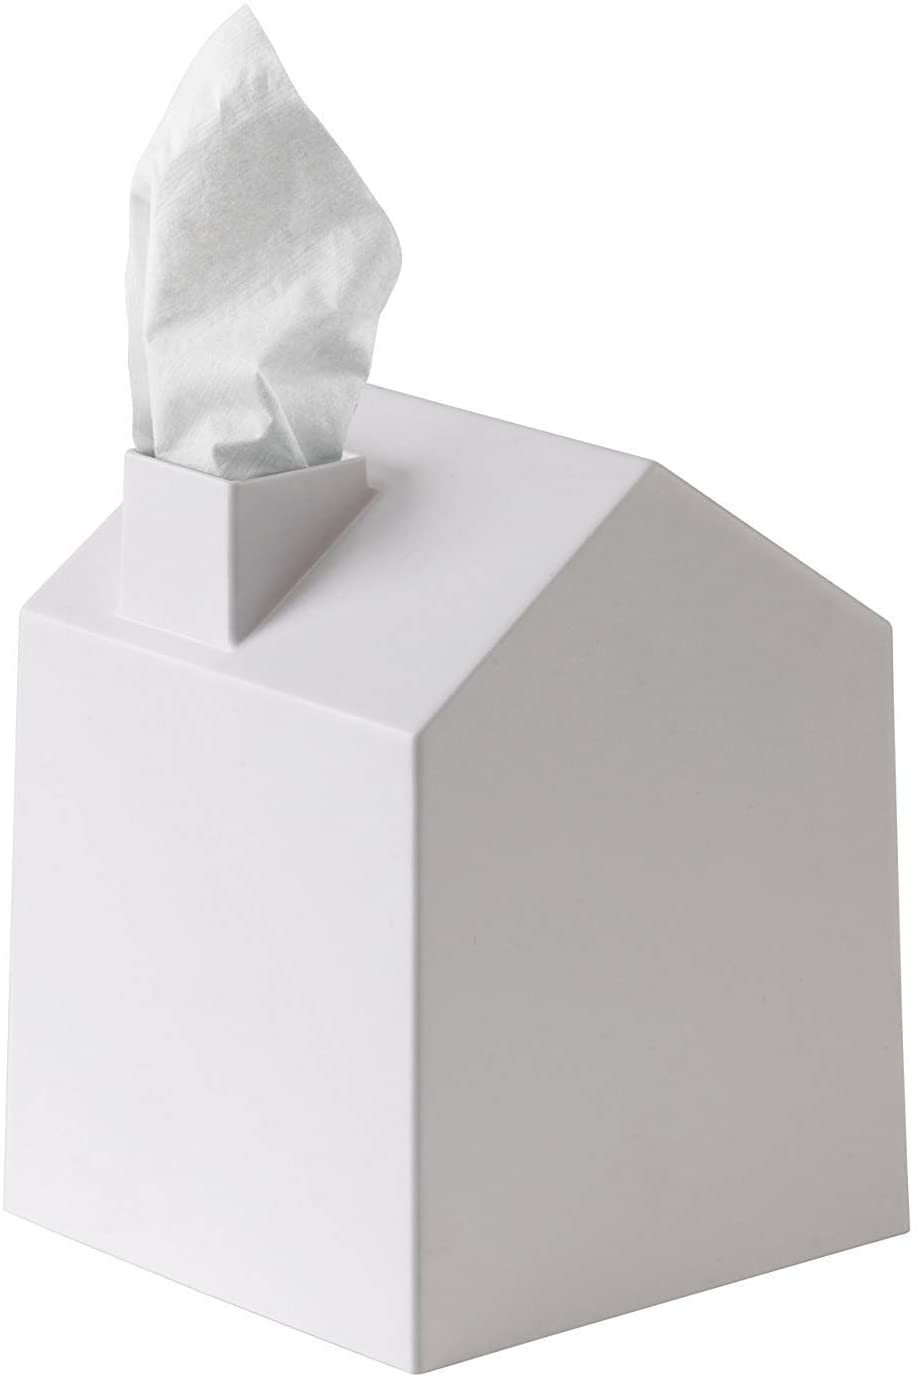 Amazon Com Umbra Casa Tissue Box Cover Adorable House Shaped Square Tissue Box Holder For Bathroom Bedroom Or Office White Home Kitchen